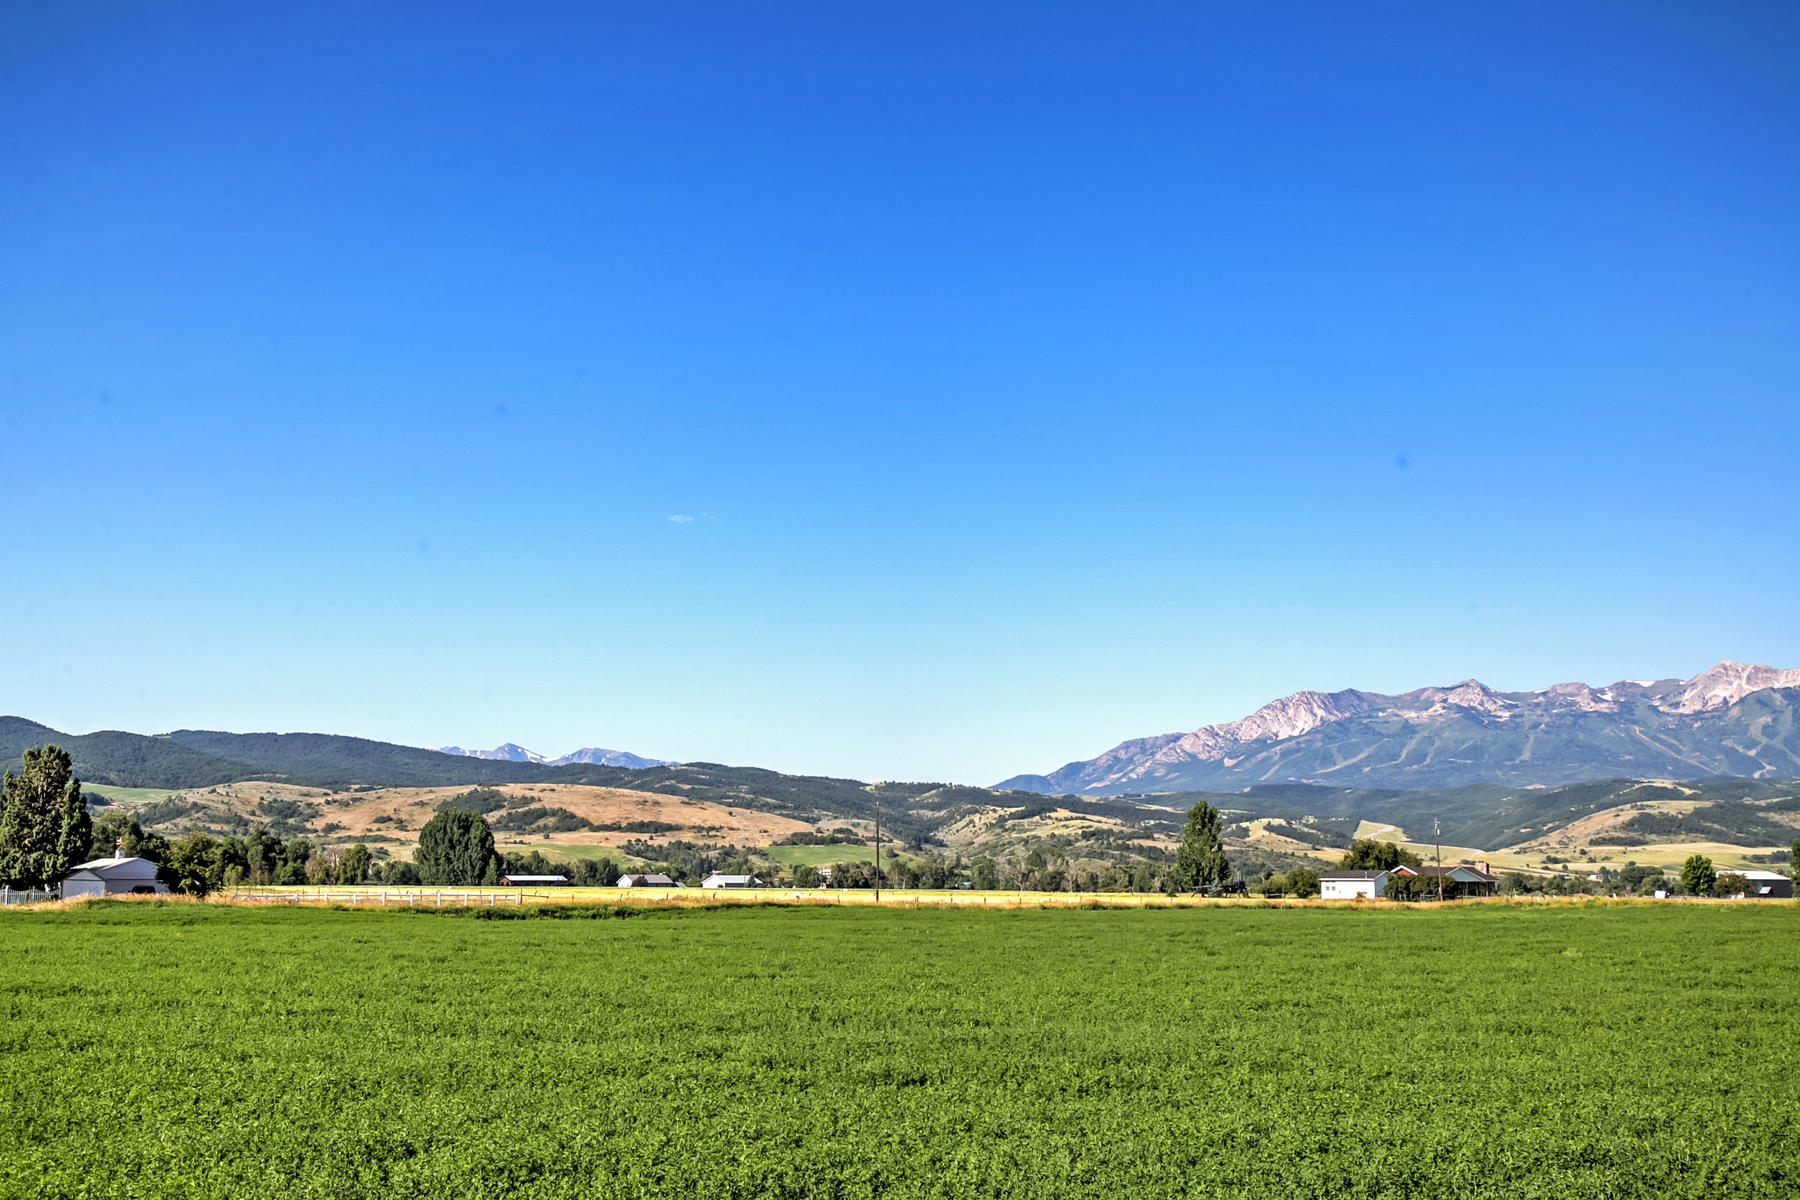 Land for Sale at 21 Prime Acres Potentially 6 Building Lots 403 South 8600 East Huntsville, Utah, 84317 United States